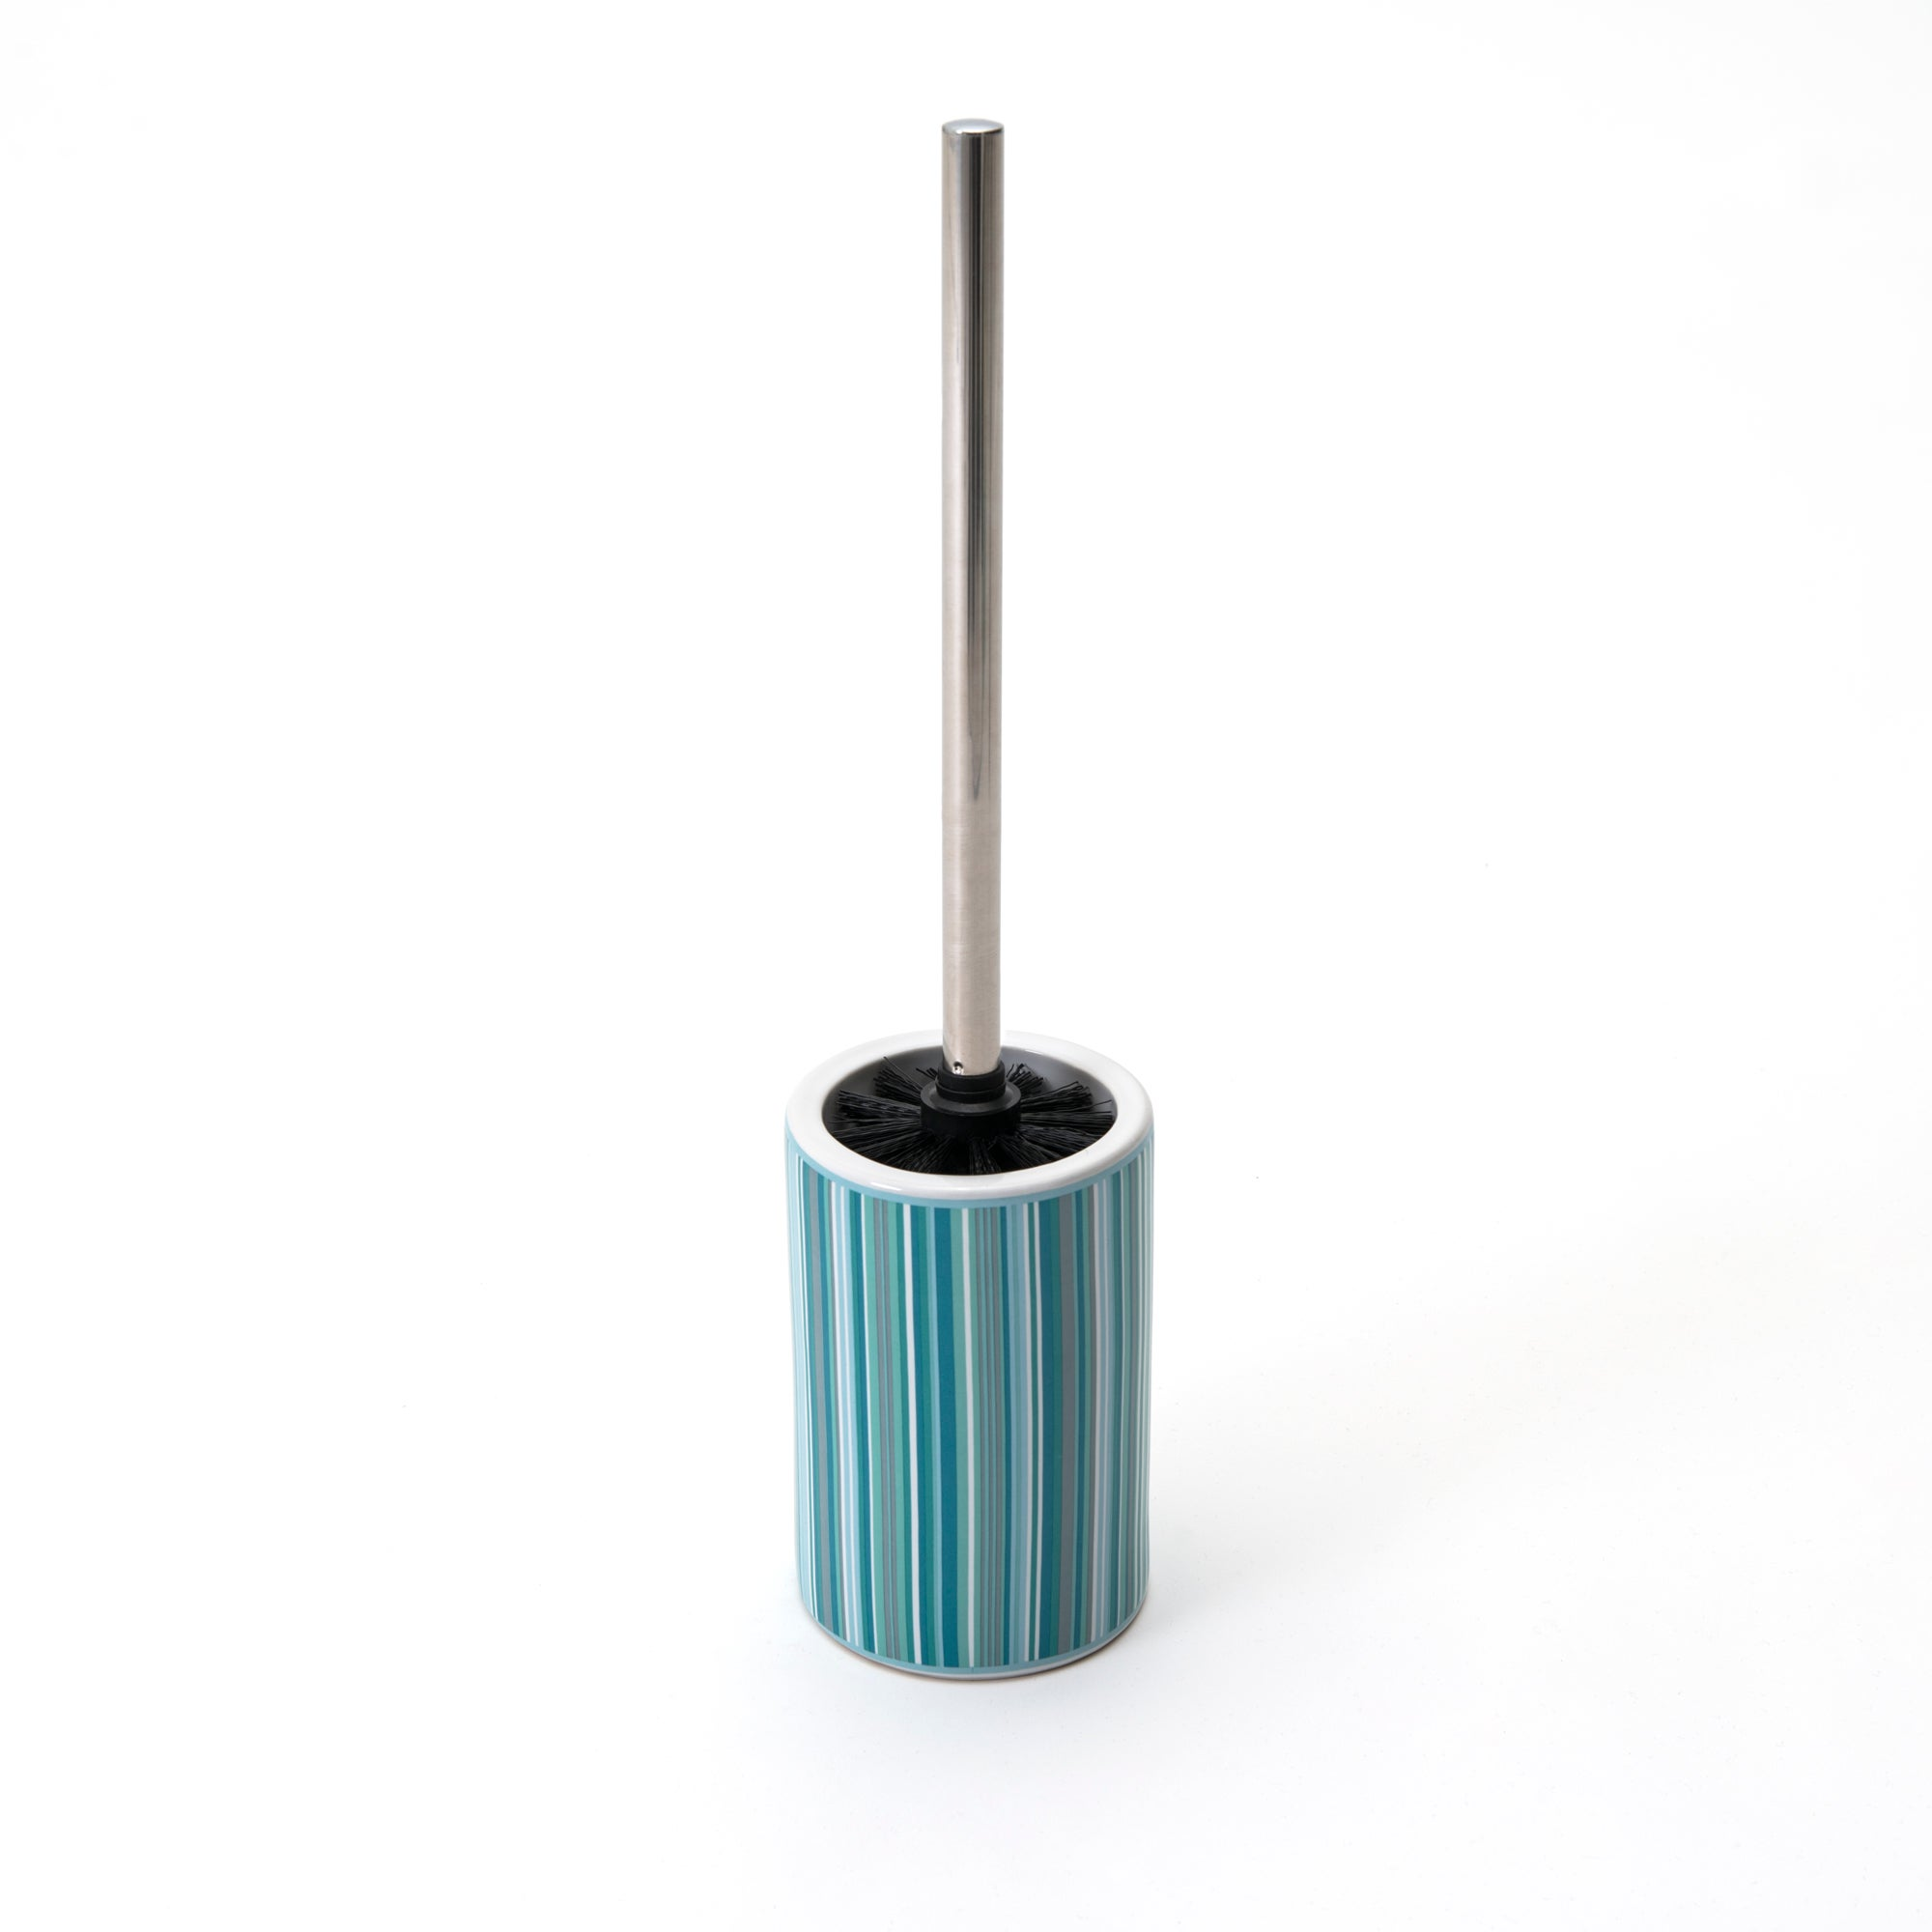 Teal Newhaven Collection Toilet Brush Holder